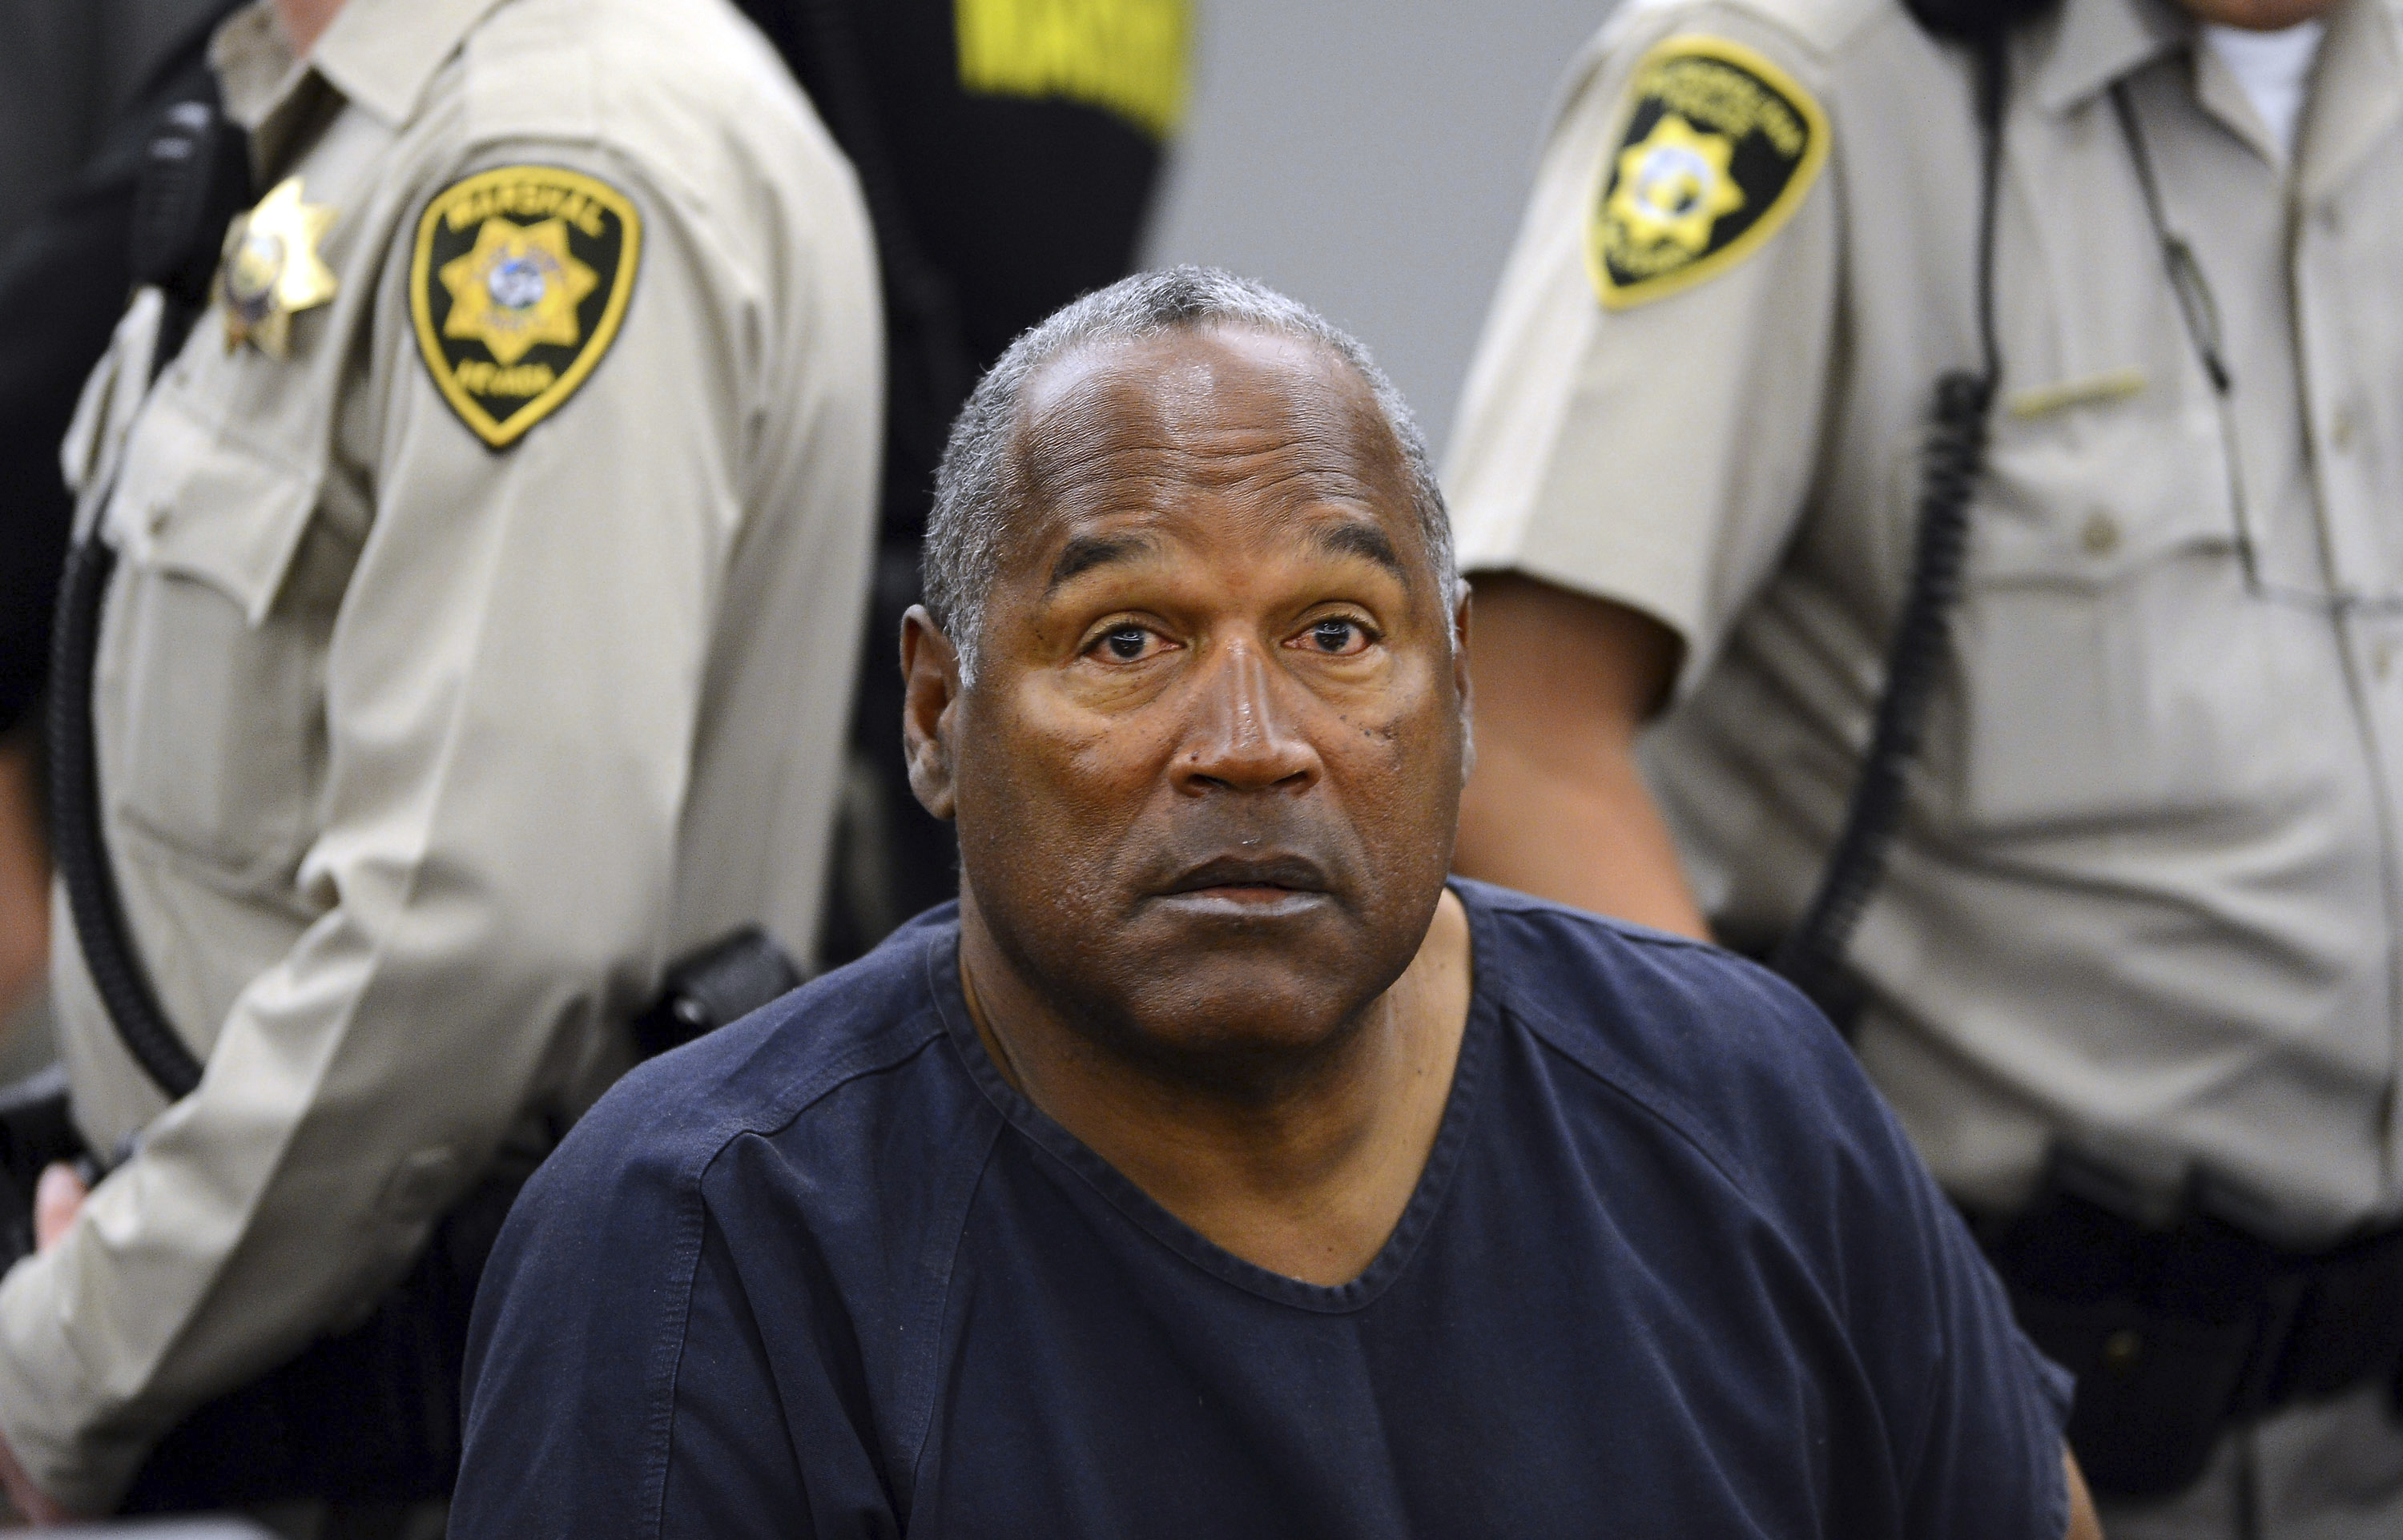 FILE - In this May 14, 2013, pool file photo, O.J. Simpson sits during a break on the second day of an evidentiary hearing in Clark County District Court in Las Vegas. Simpson, the former football star, TV pitchman and now Nevada prison inmate, will have a lot going for him when he appears before state parole board members Thursday, July 20, 2017 seeking his release after more than eight years for an ill-fated bid to retrieve sports memorabilia. A Nevada prison official said early Sunday, Oct. 1, 2017, O.J. Simpson, the former football legend and Hollywood star, has been released from a Nevada prison in Lovelock after serving nine years for armed robbery. (AP Photo/Ethan Miller, Pool, File)